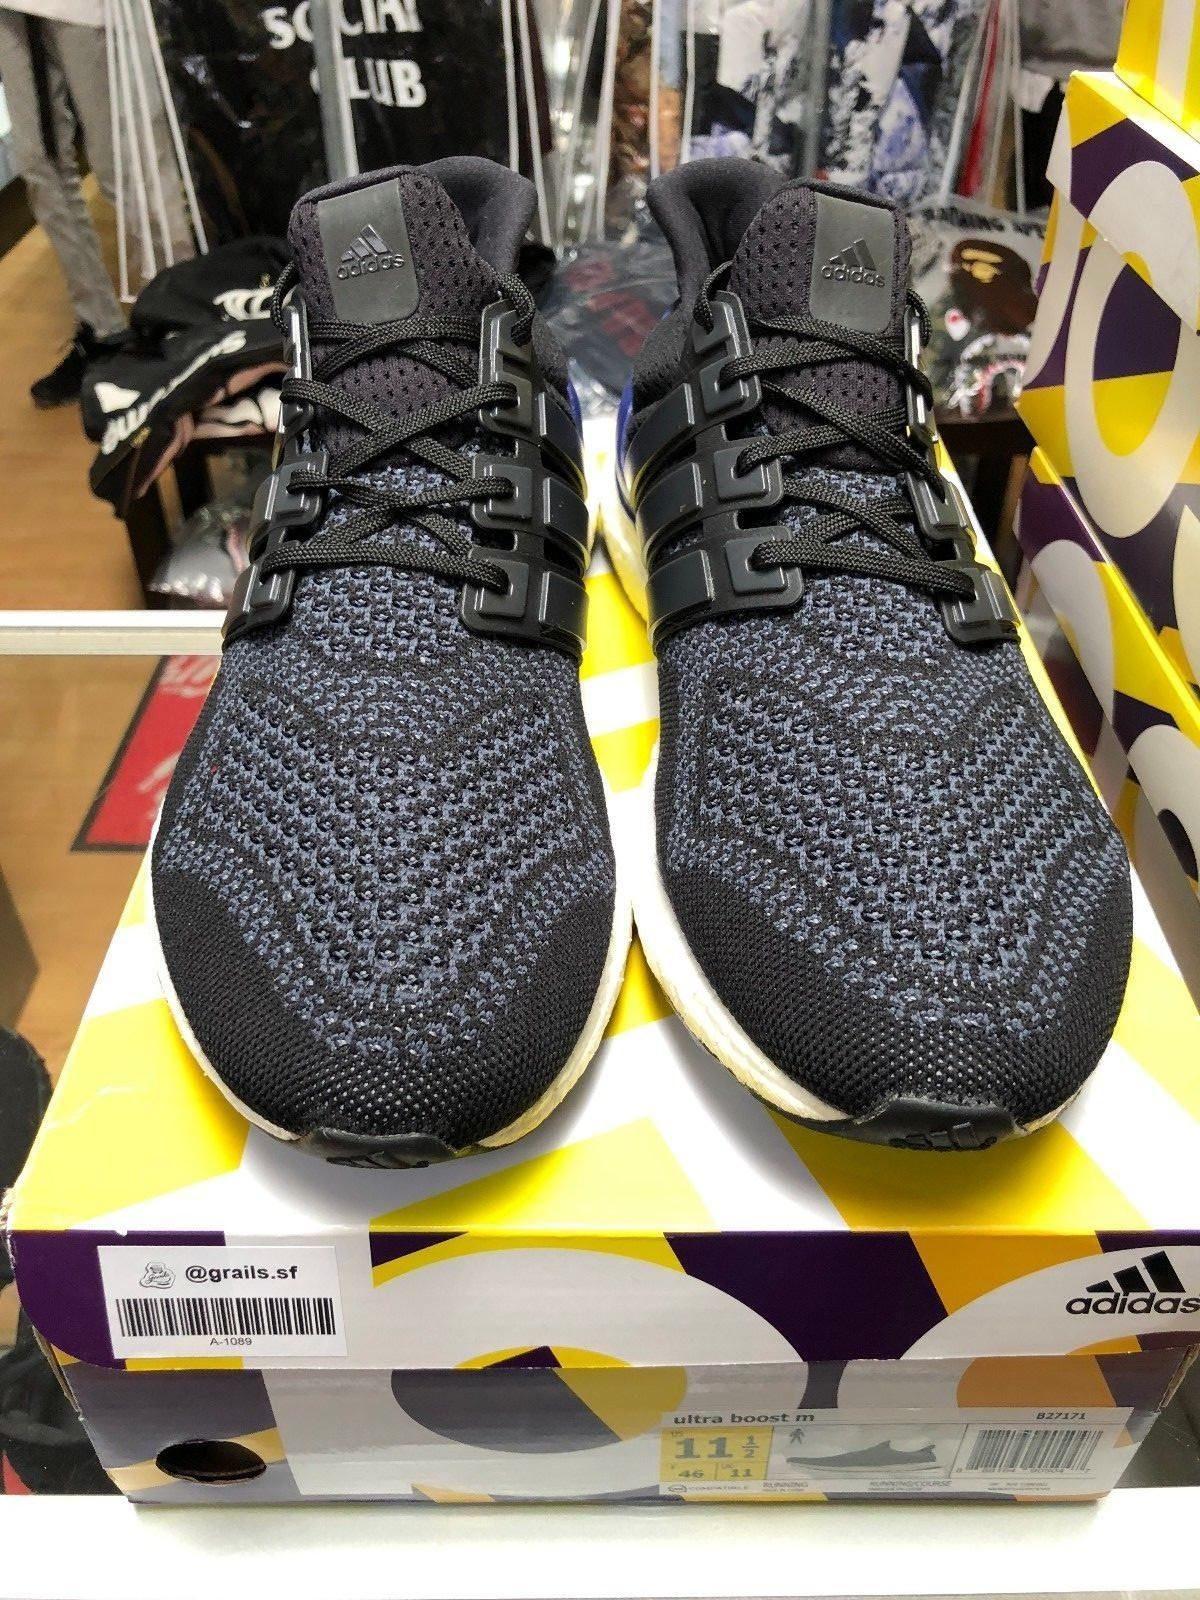 Adidas Ultra Boost 1.0 OG Black Gold Purple (B27171) size